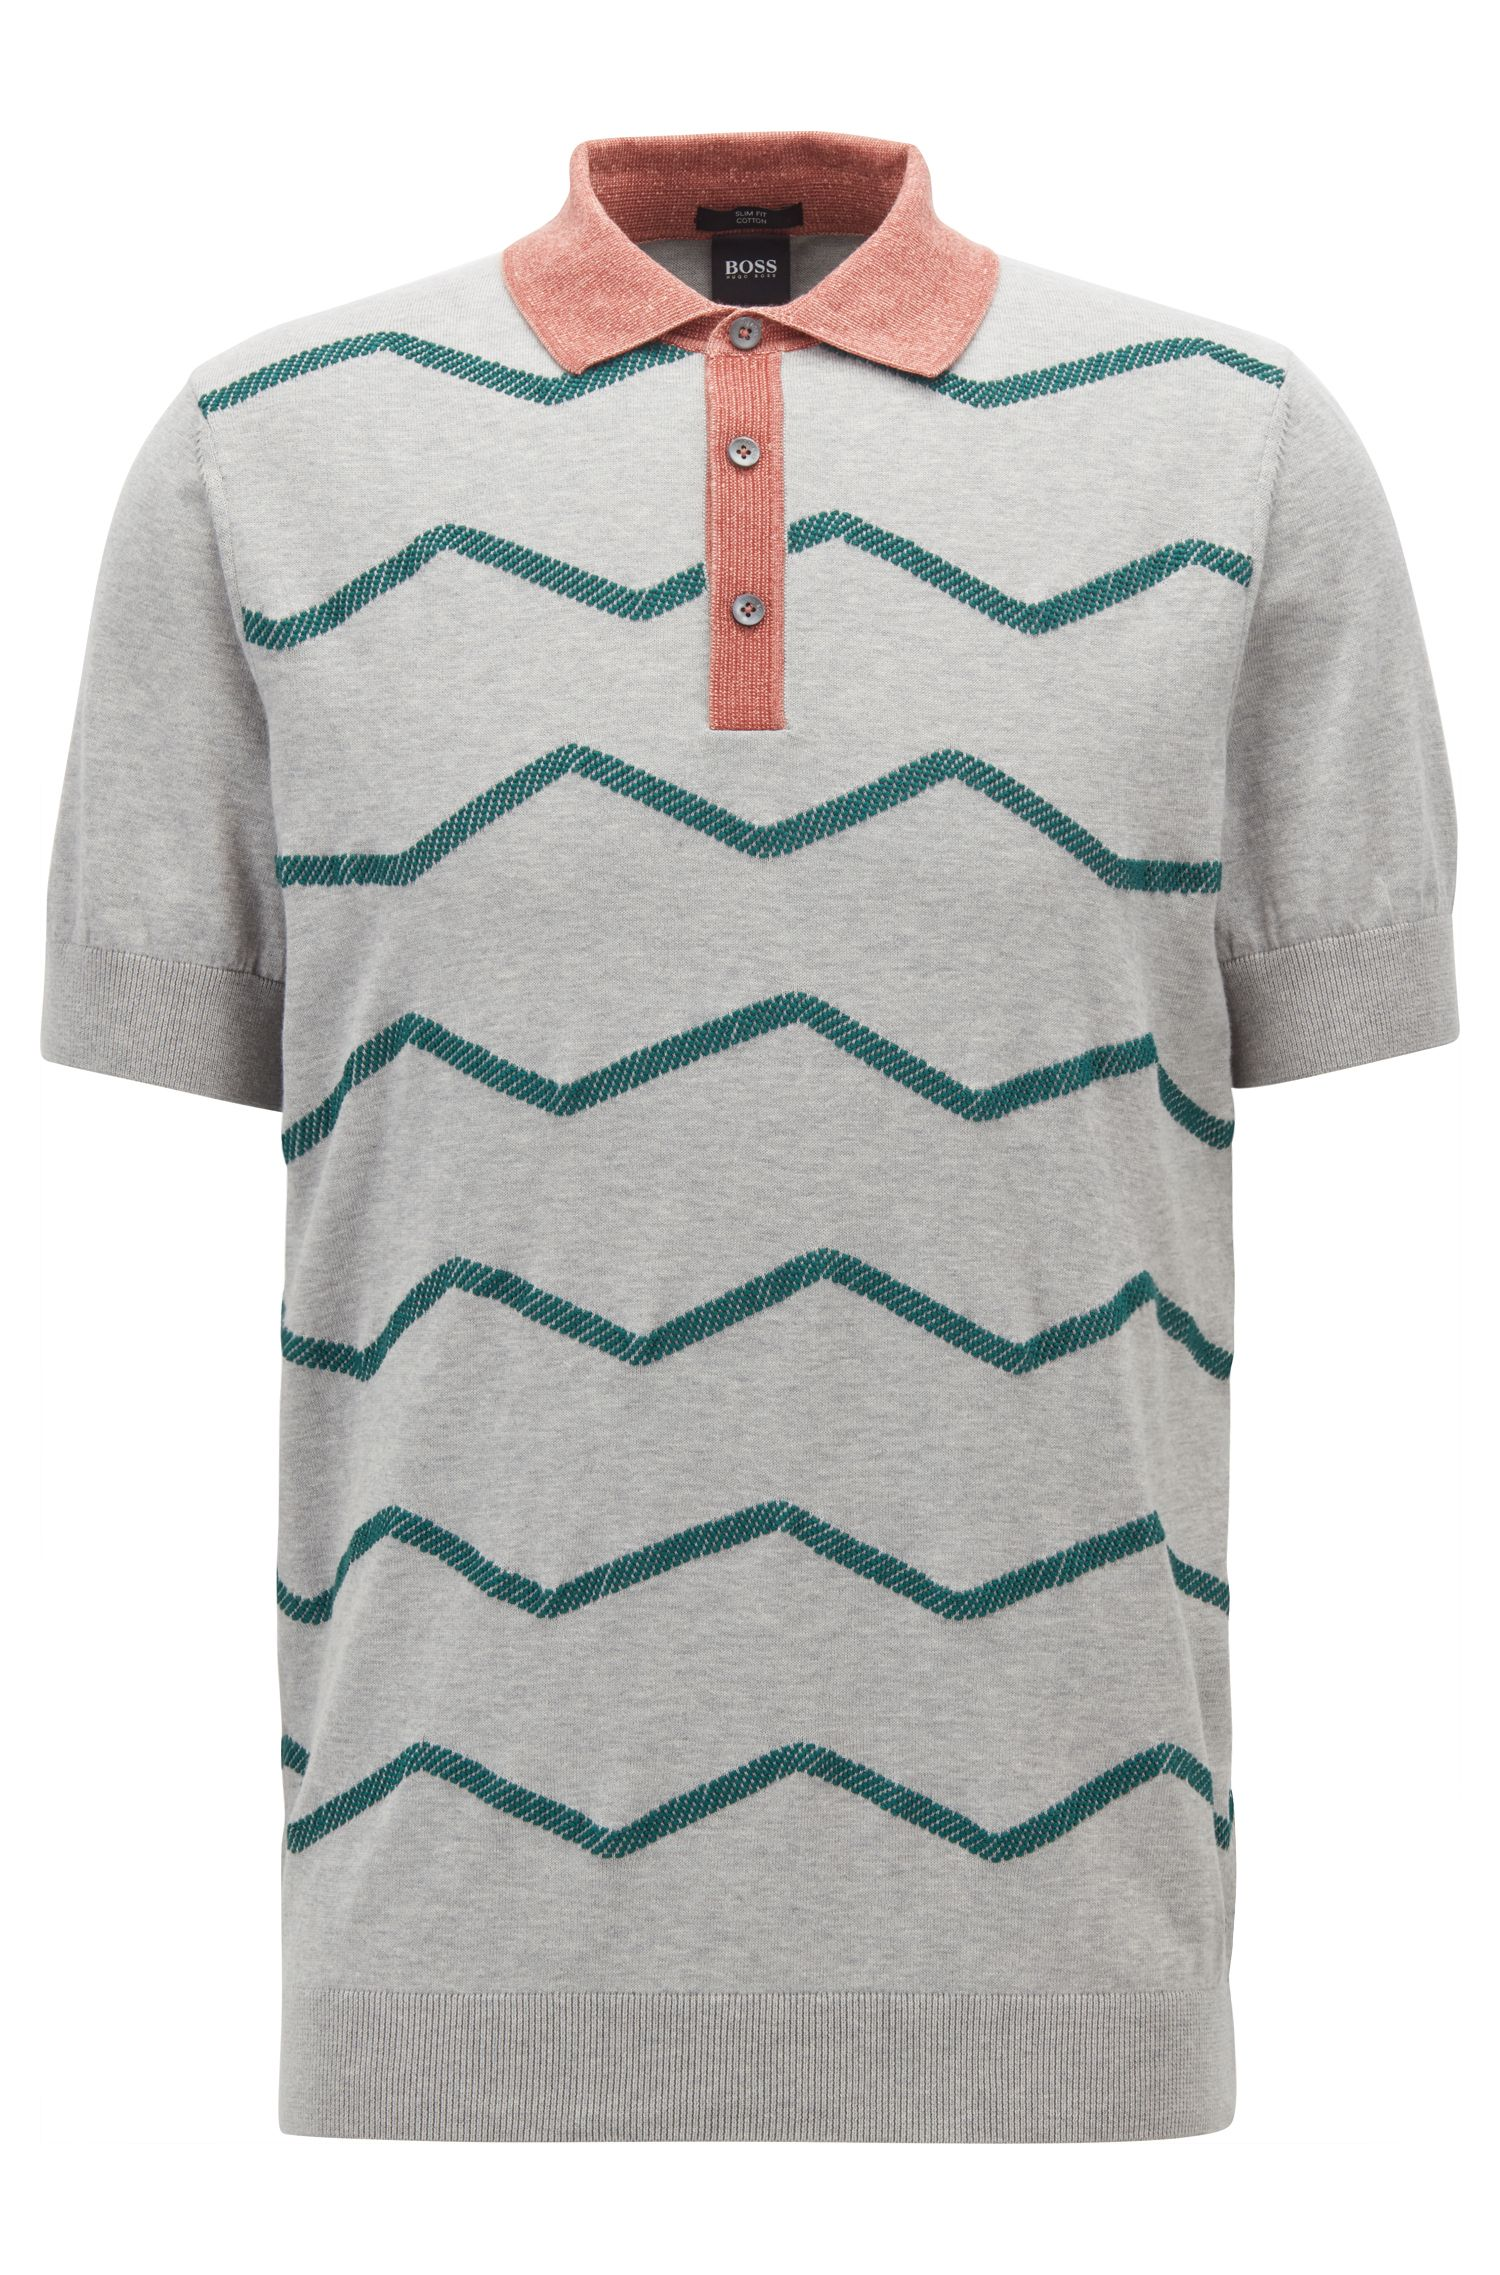 Jersey tipo polo slim fit con bordado en zigzag